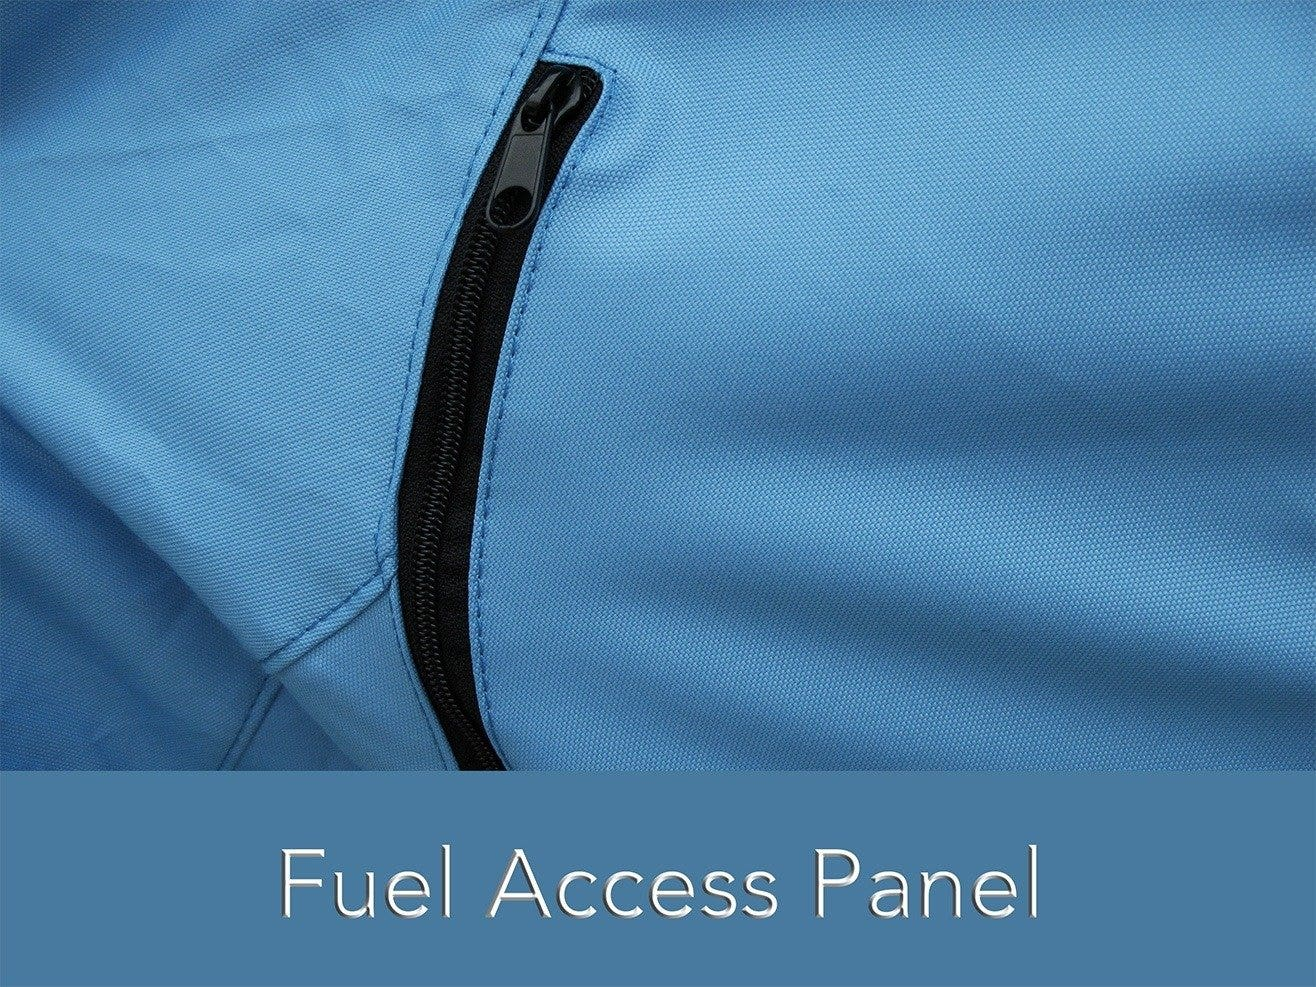 Fuel access panel